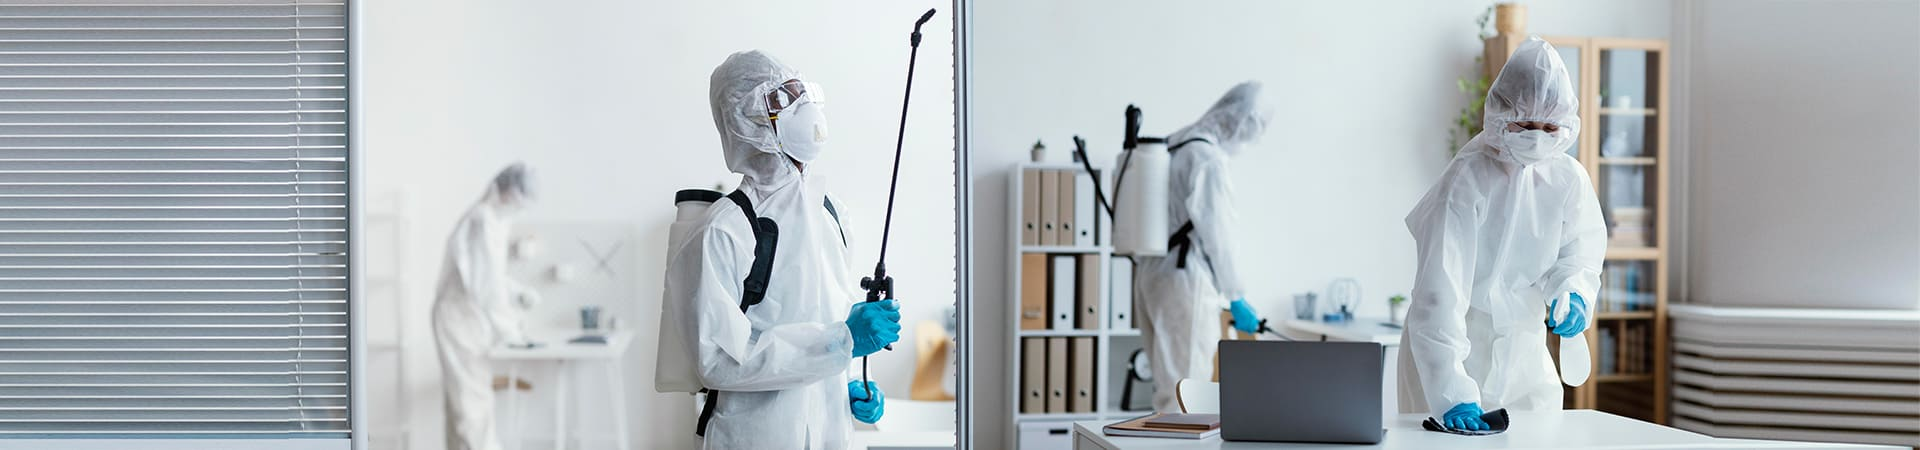 janitorial sanitizing and cleaning